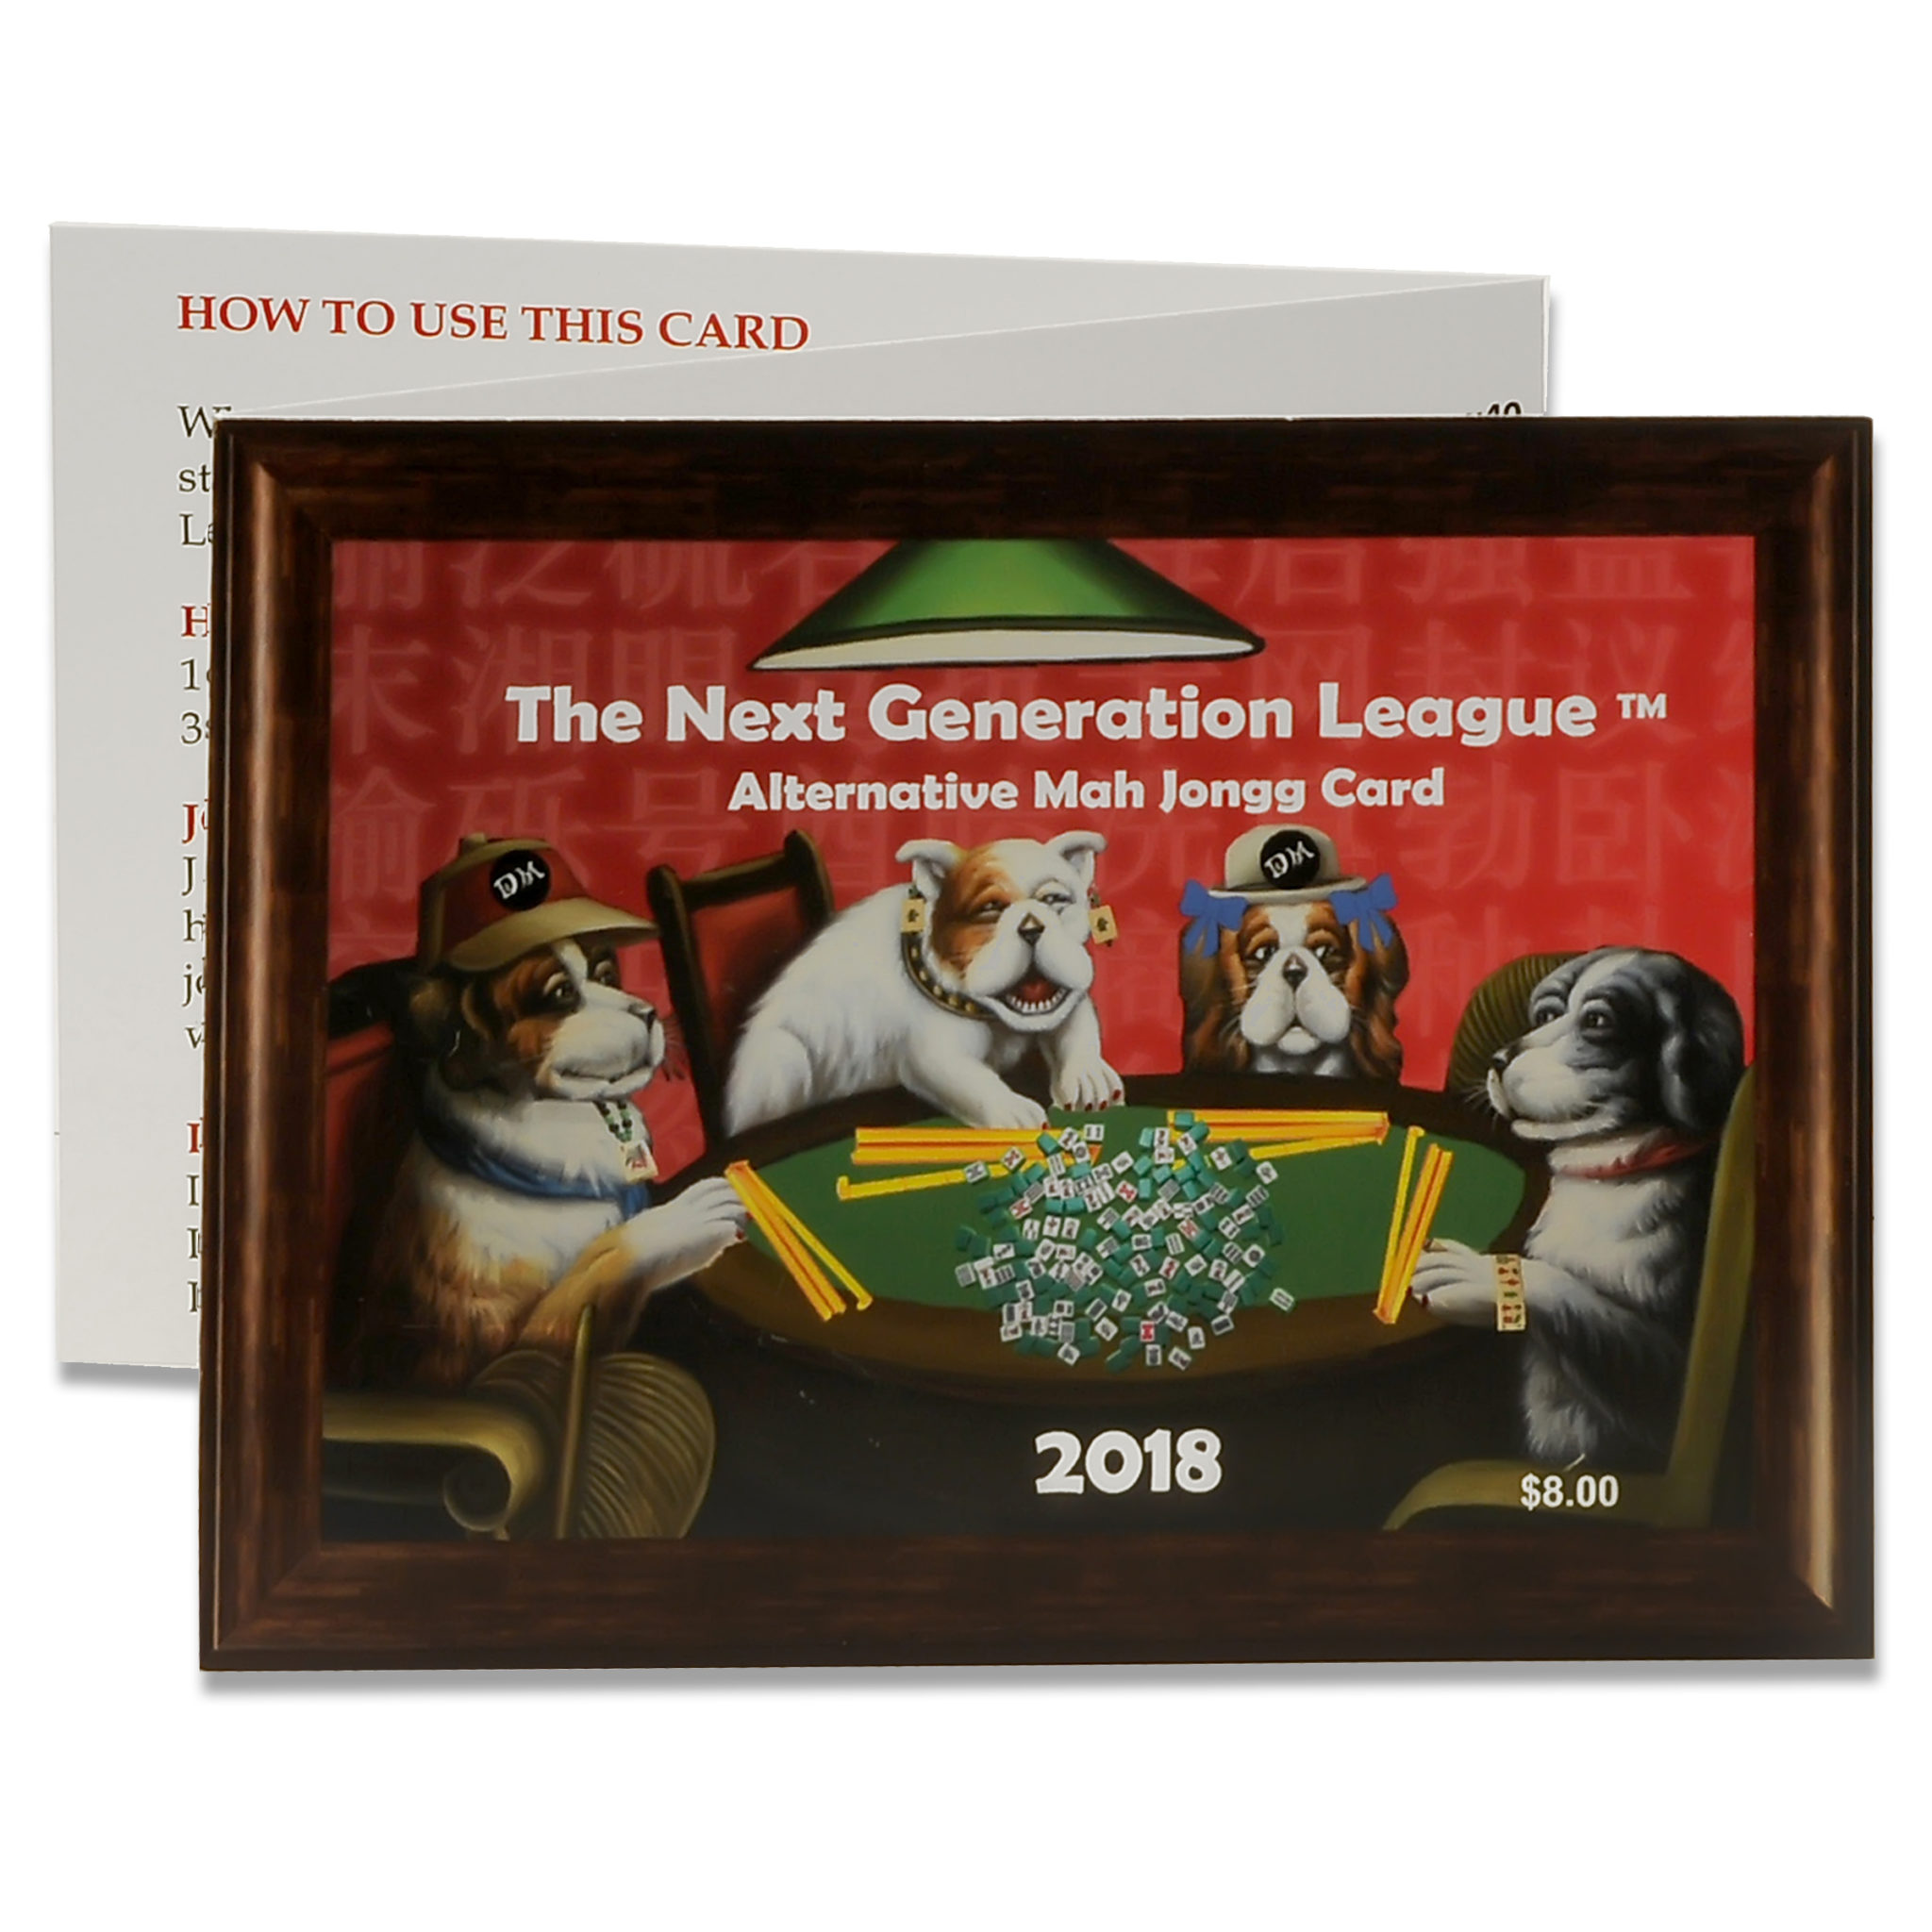 2018 Next Generation Card by Destination Mah Jongg